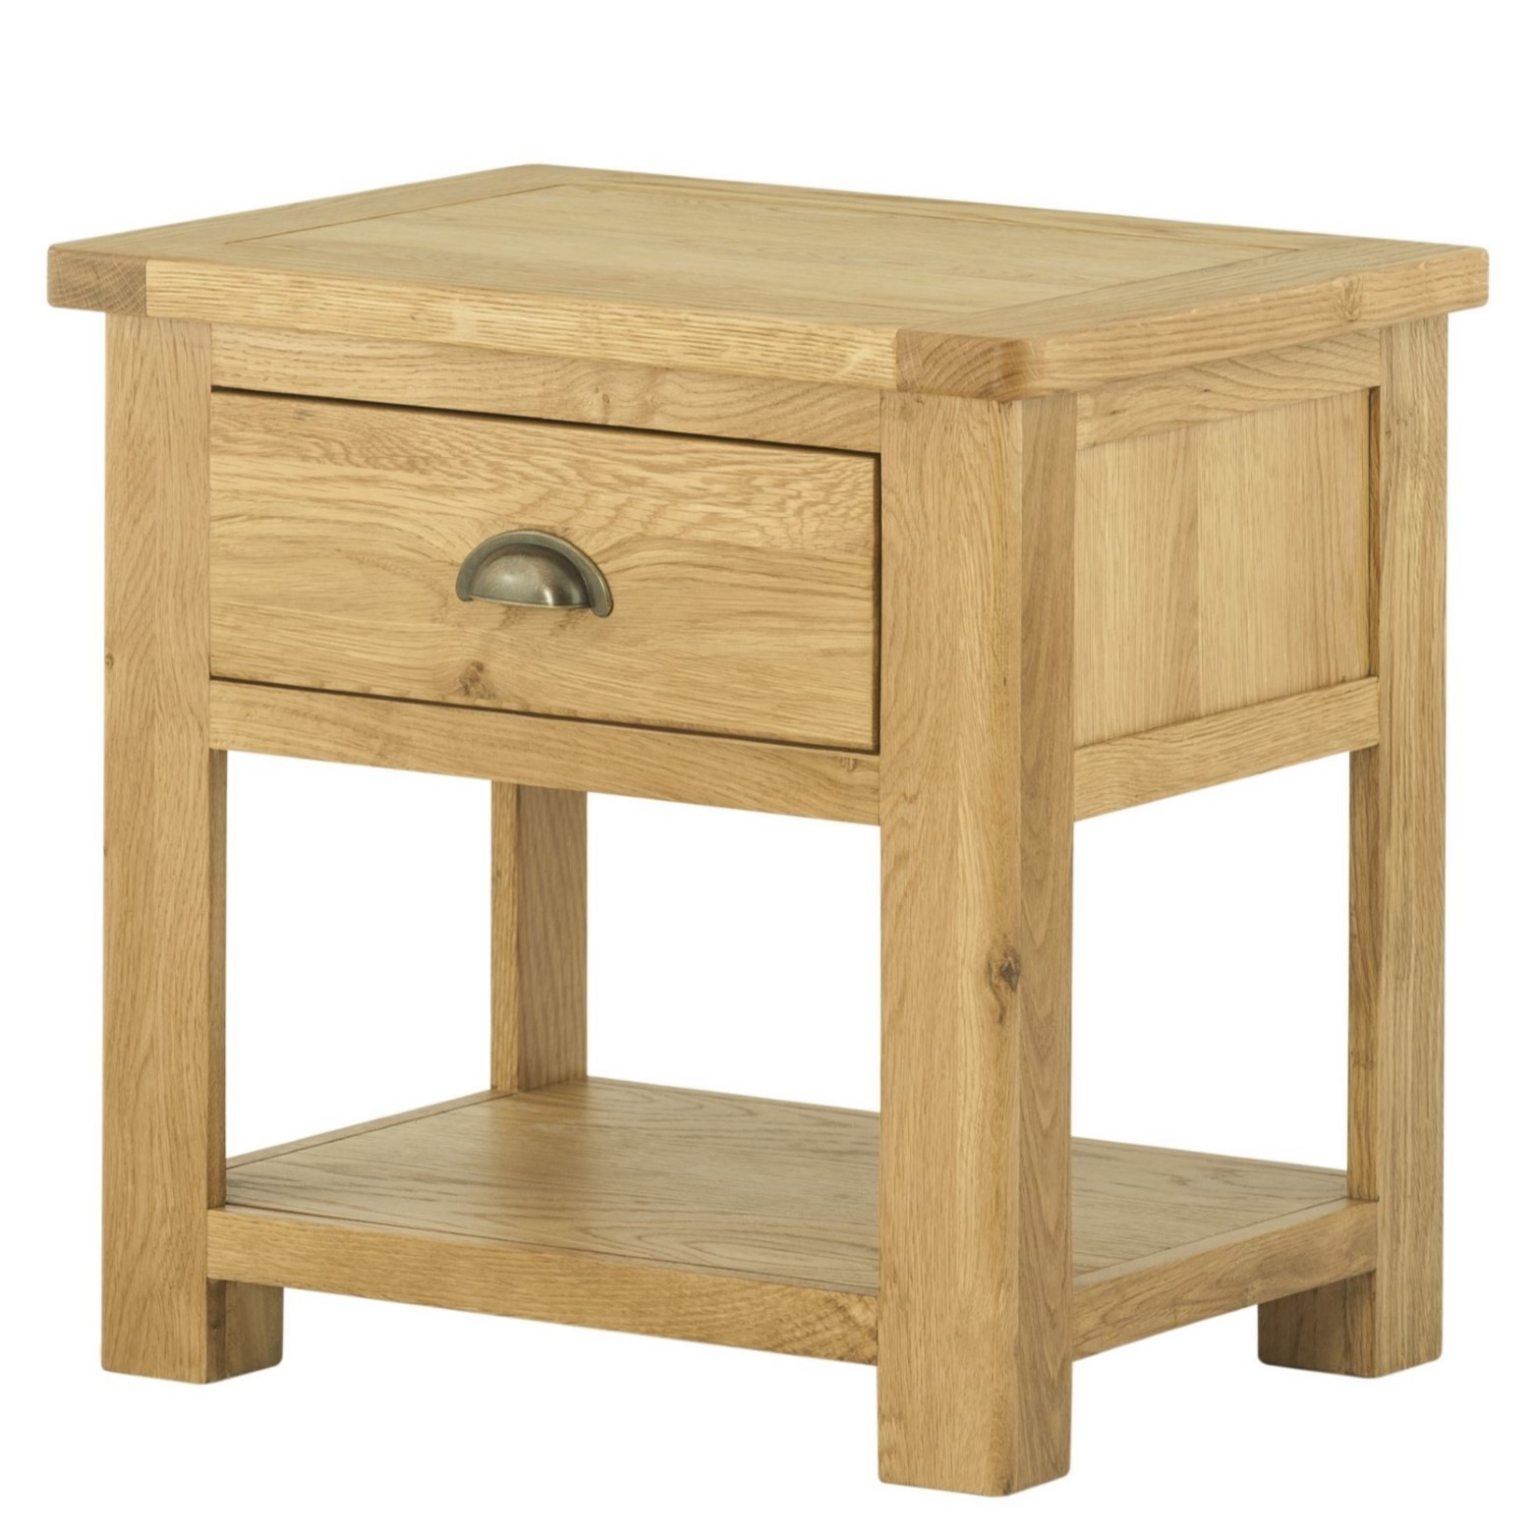 Cotswold Lamp Table with drawer - Oak